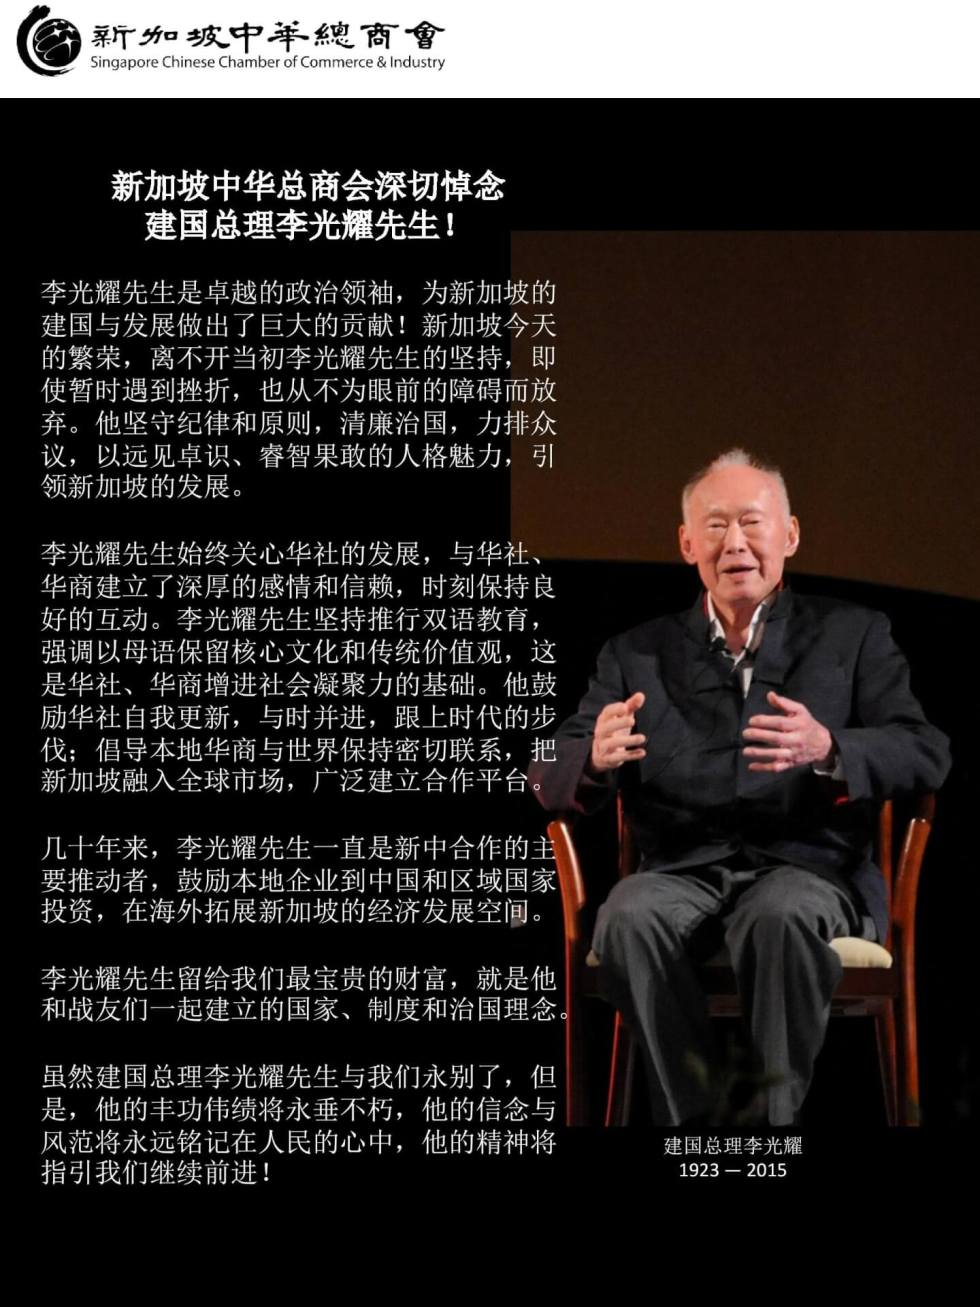 LKY Tribute _ SCCCI chinese